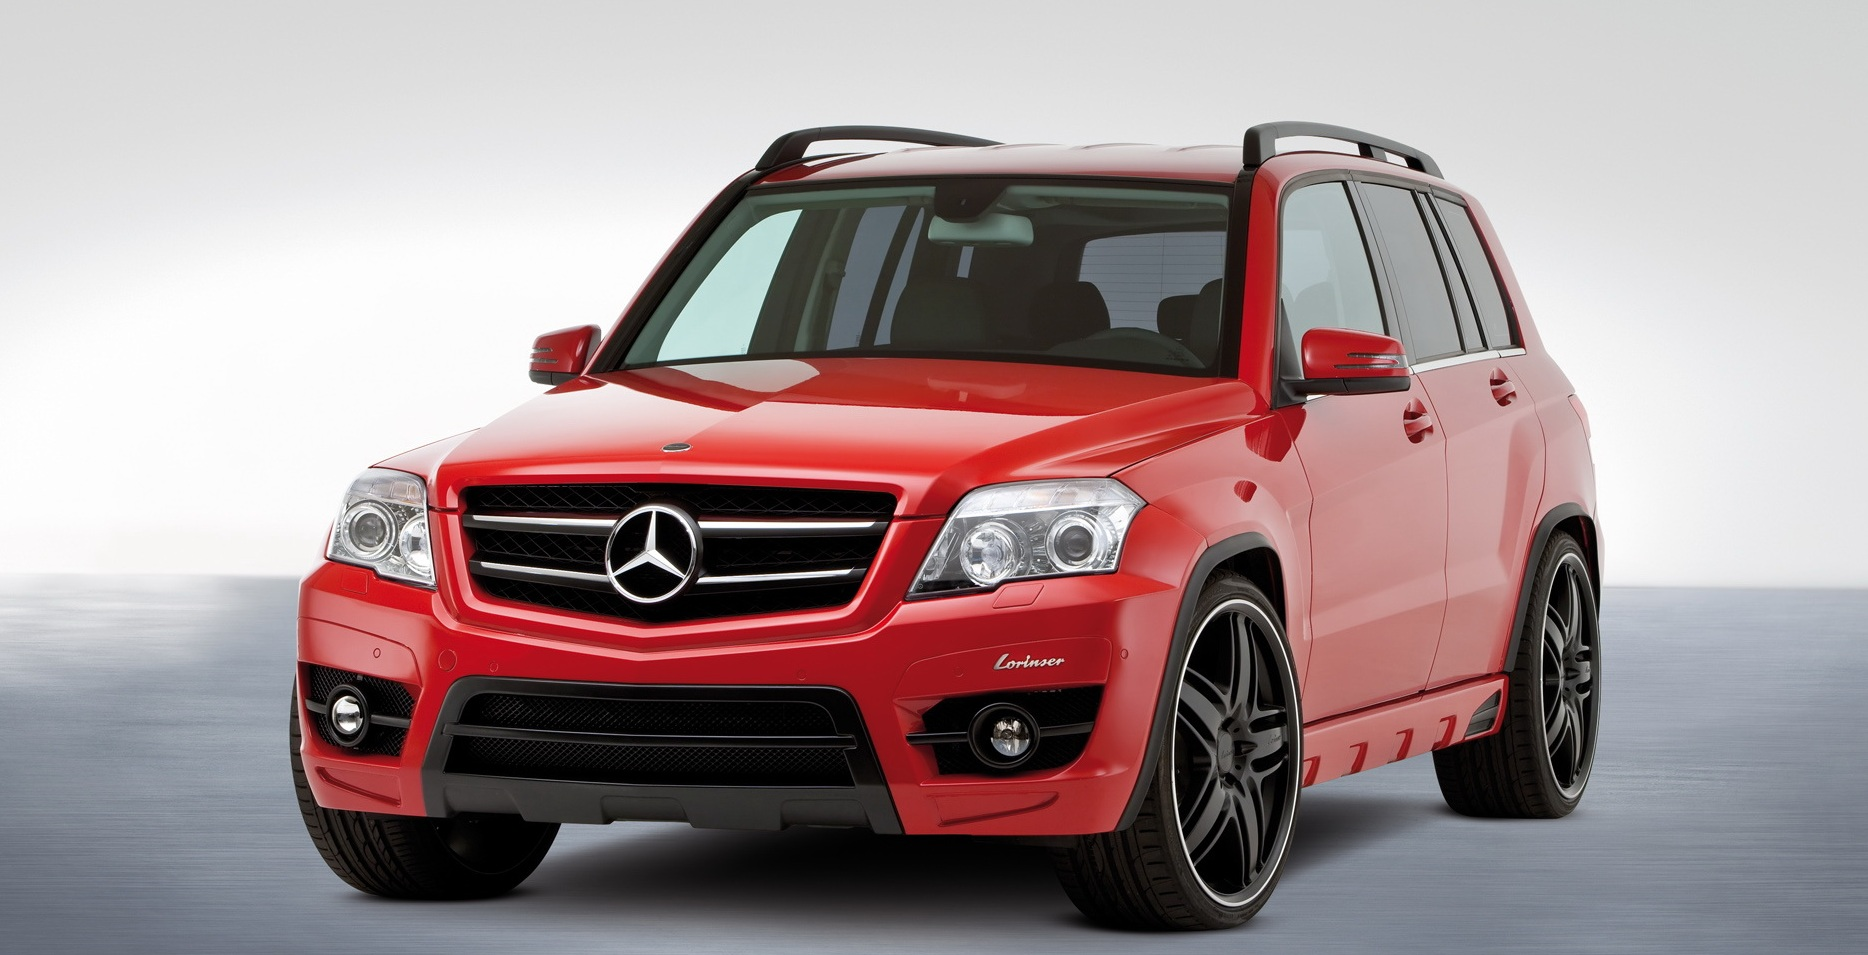 Mercedes Benz Suv Related Images Start 350 Weili Automotive Network